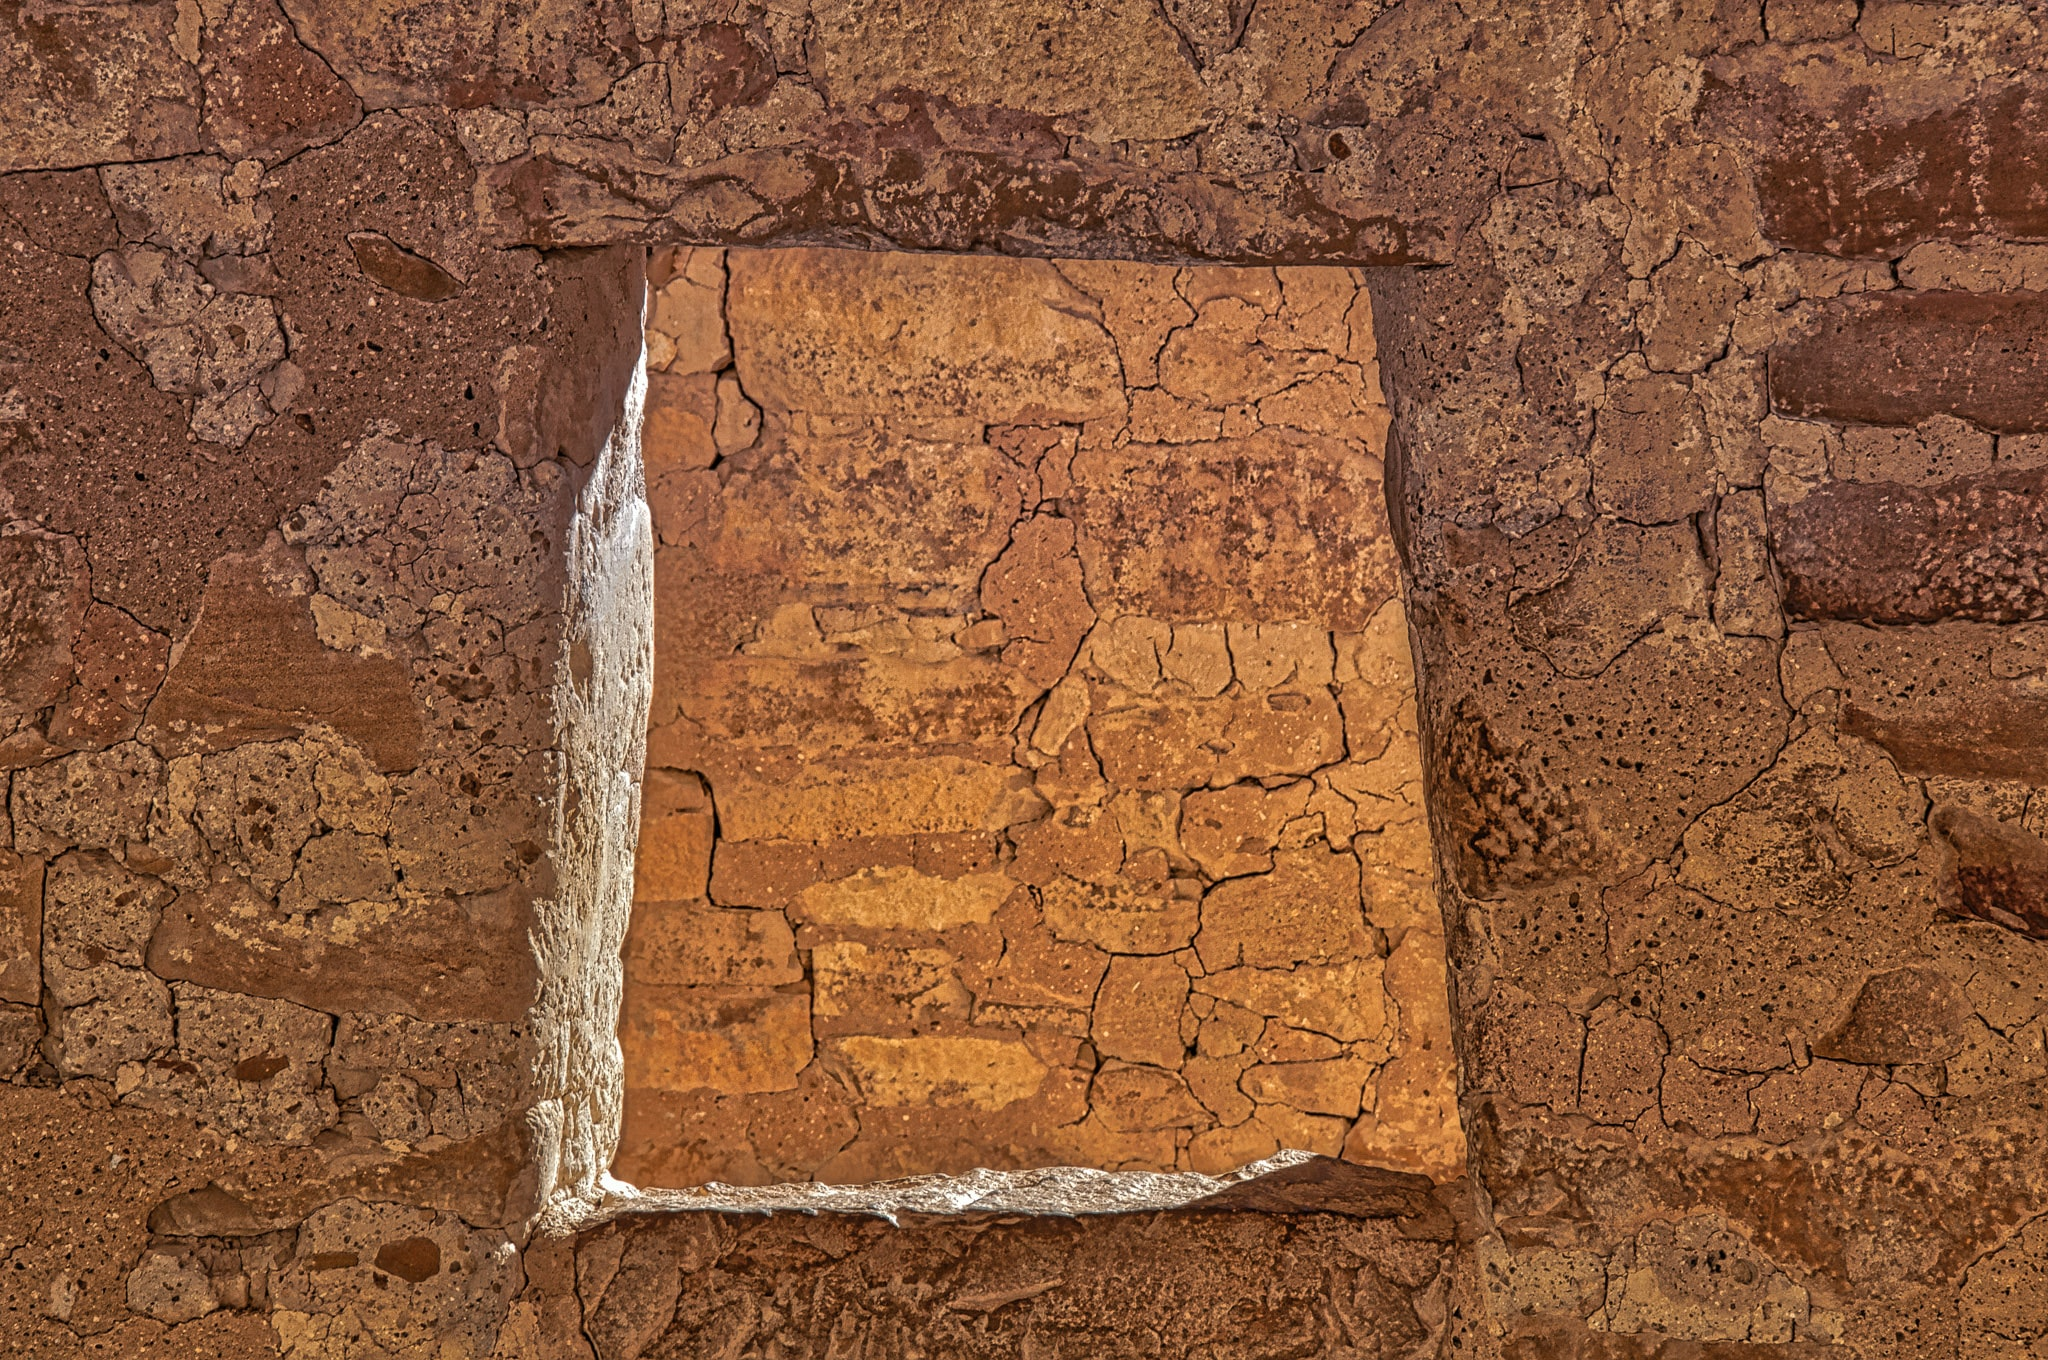 A view through a window in one of the ruins in Cliff House pueblo in Nesa Verde National Park near Durango, Colorado.